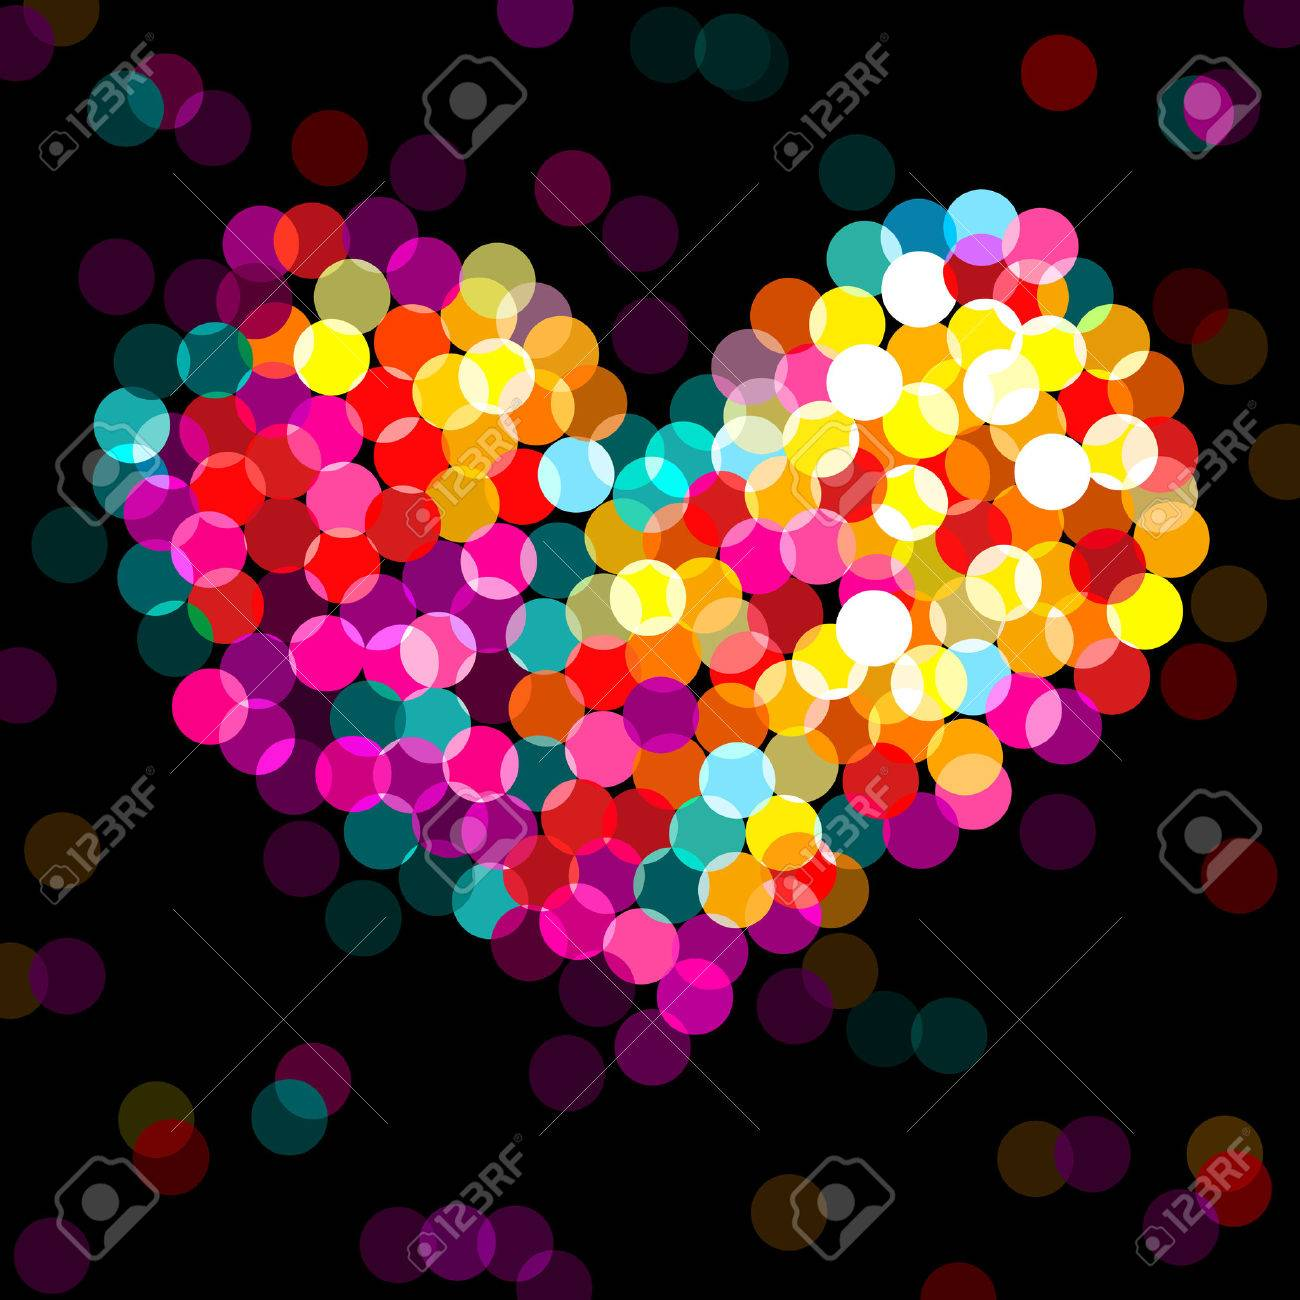 colorful shining, bright heart - 4136813